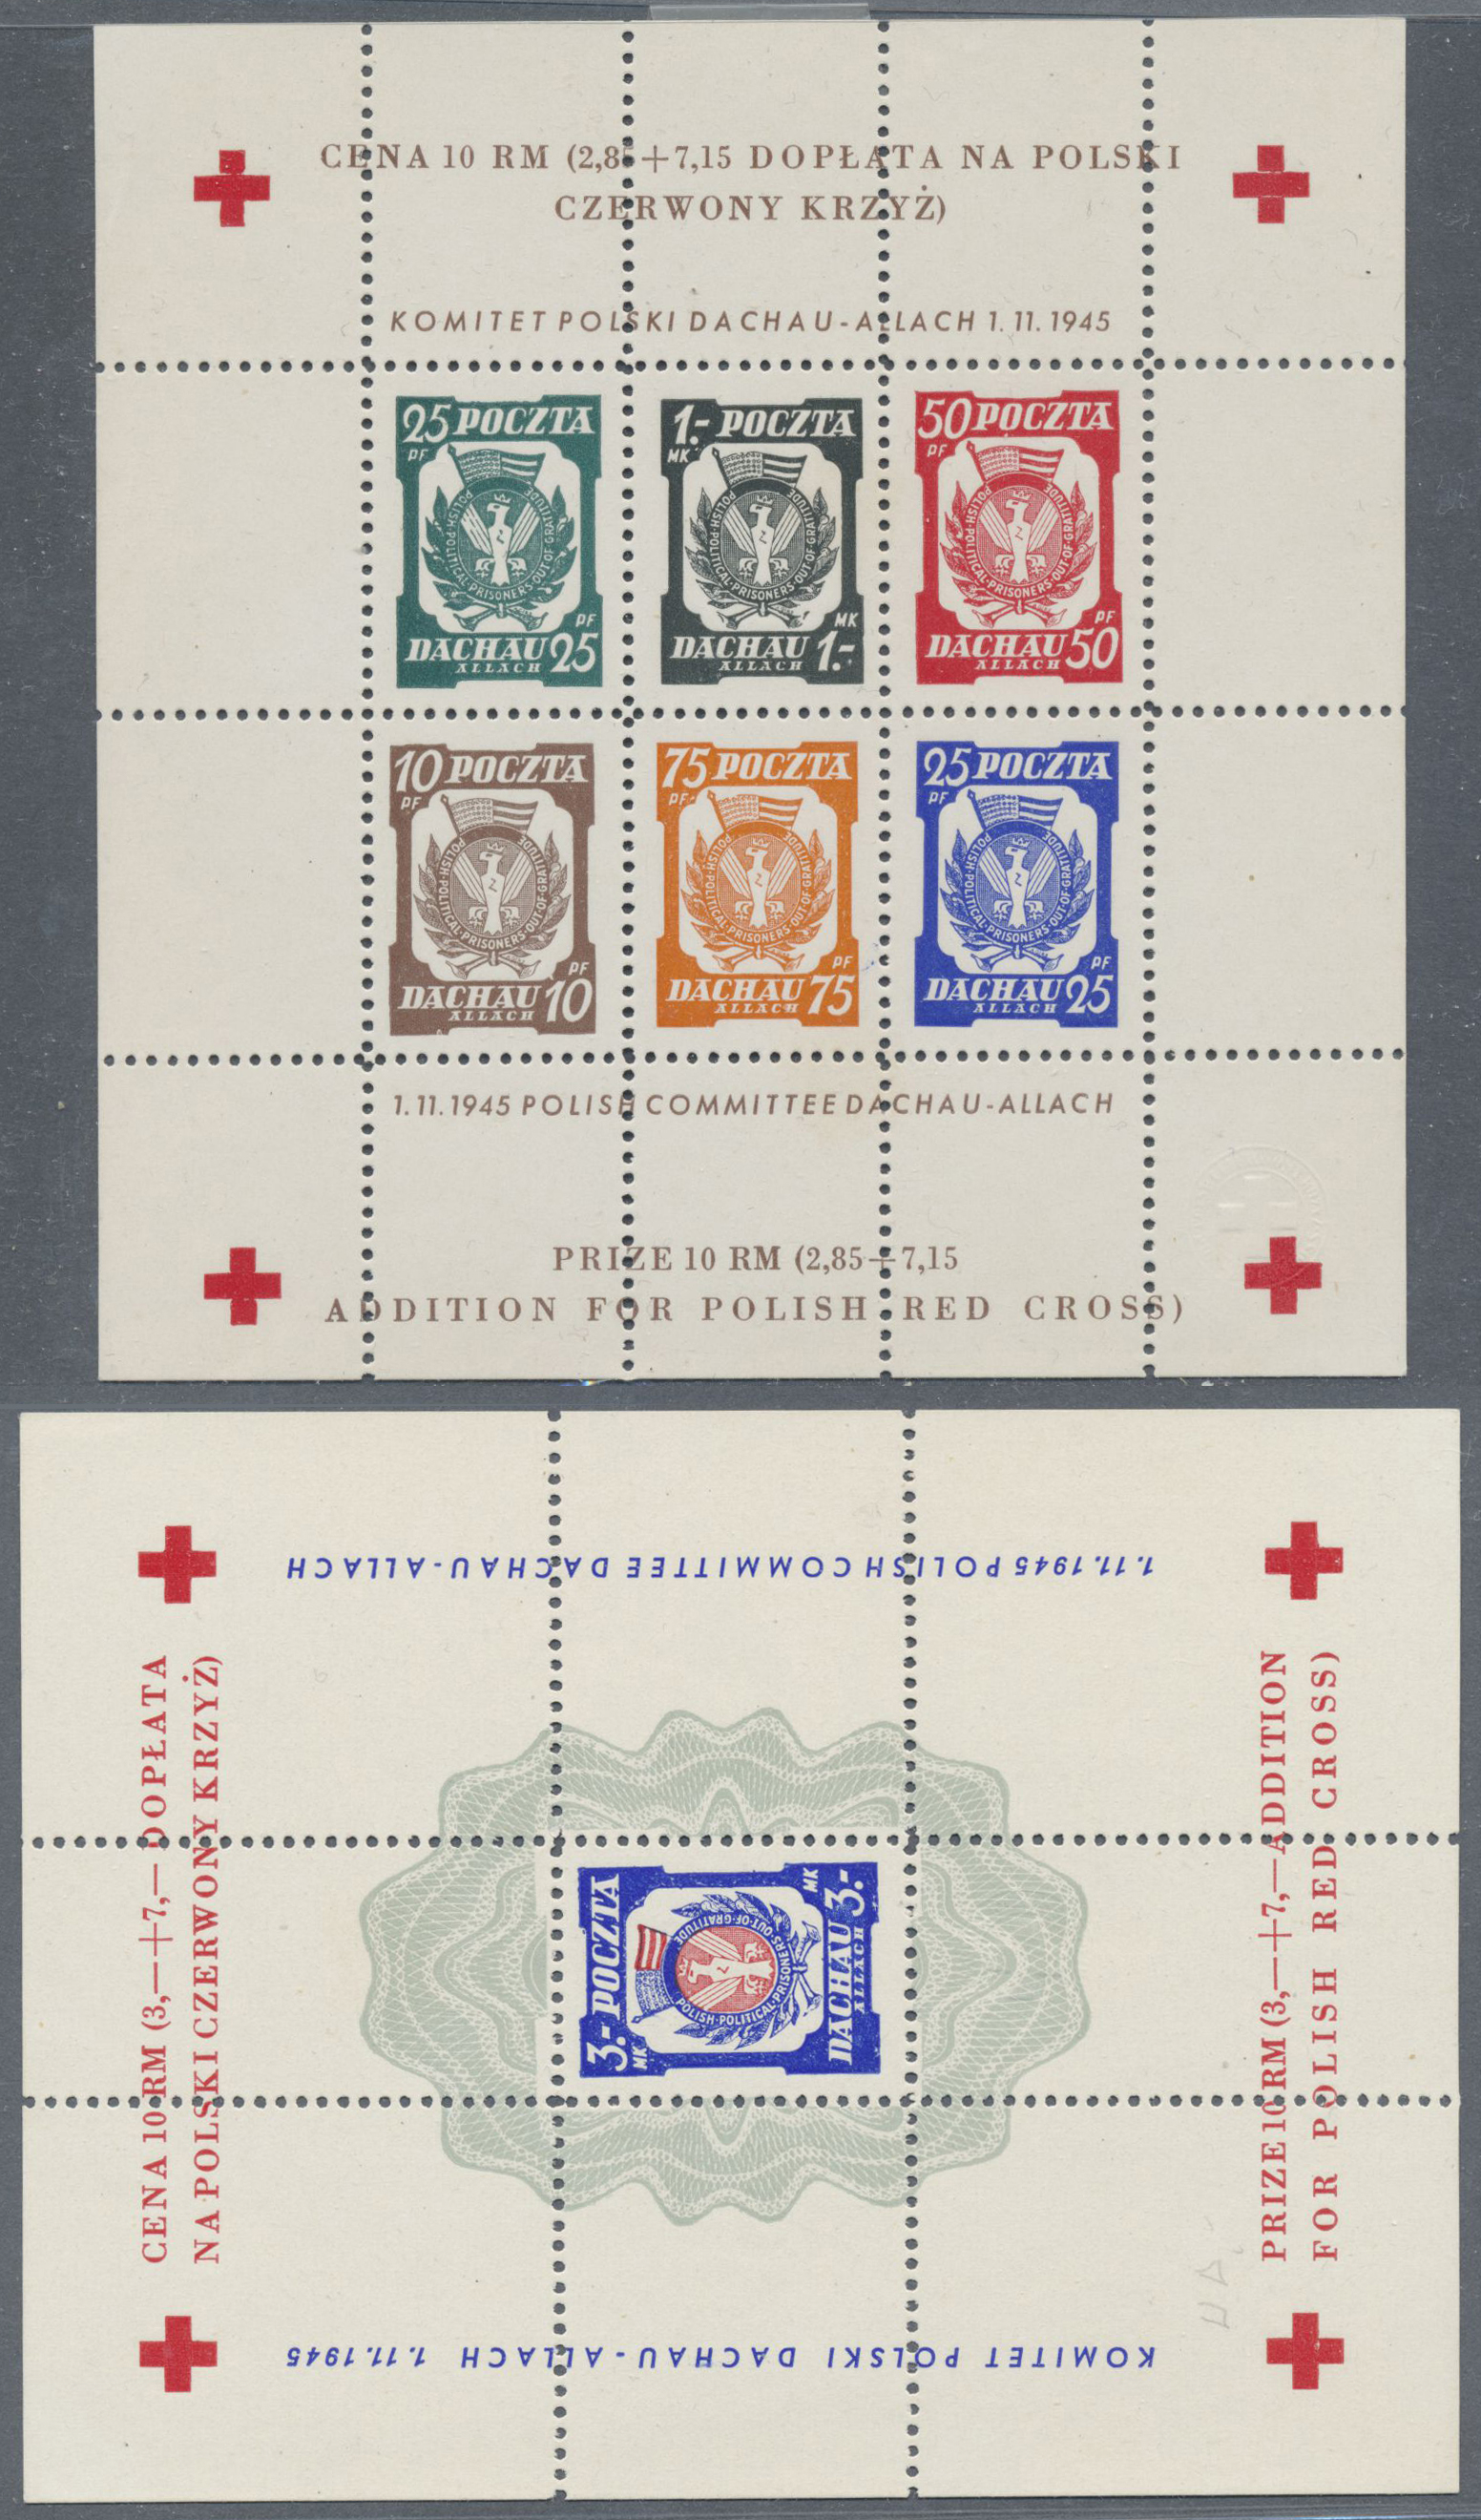 Lot 34848 - polen  -  Auktionshaus Christoph Gärtner GmbH & Co. KG Collections Germany,  Collections Supplement, Surprise boxes #39 Day 7